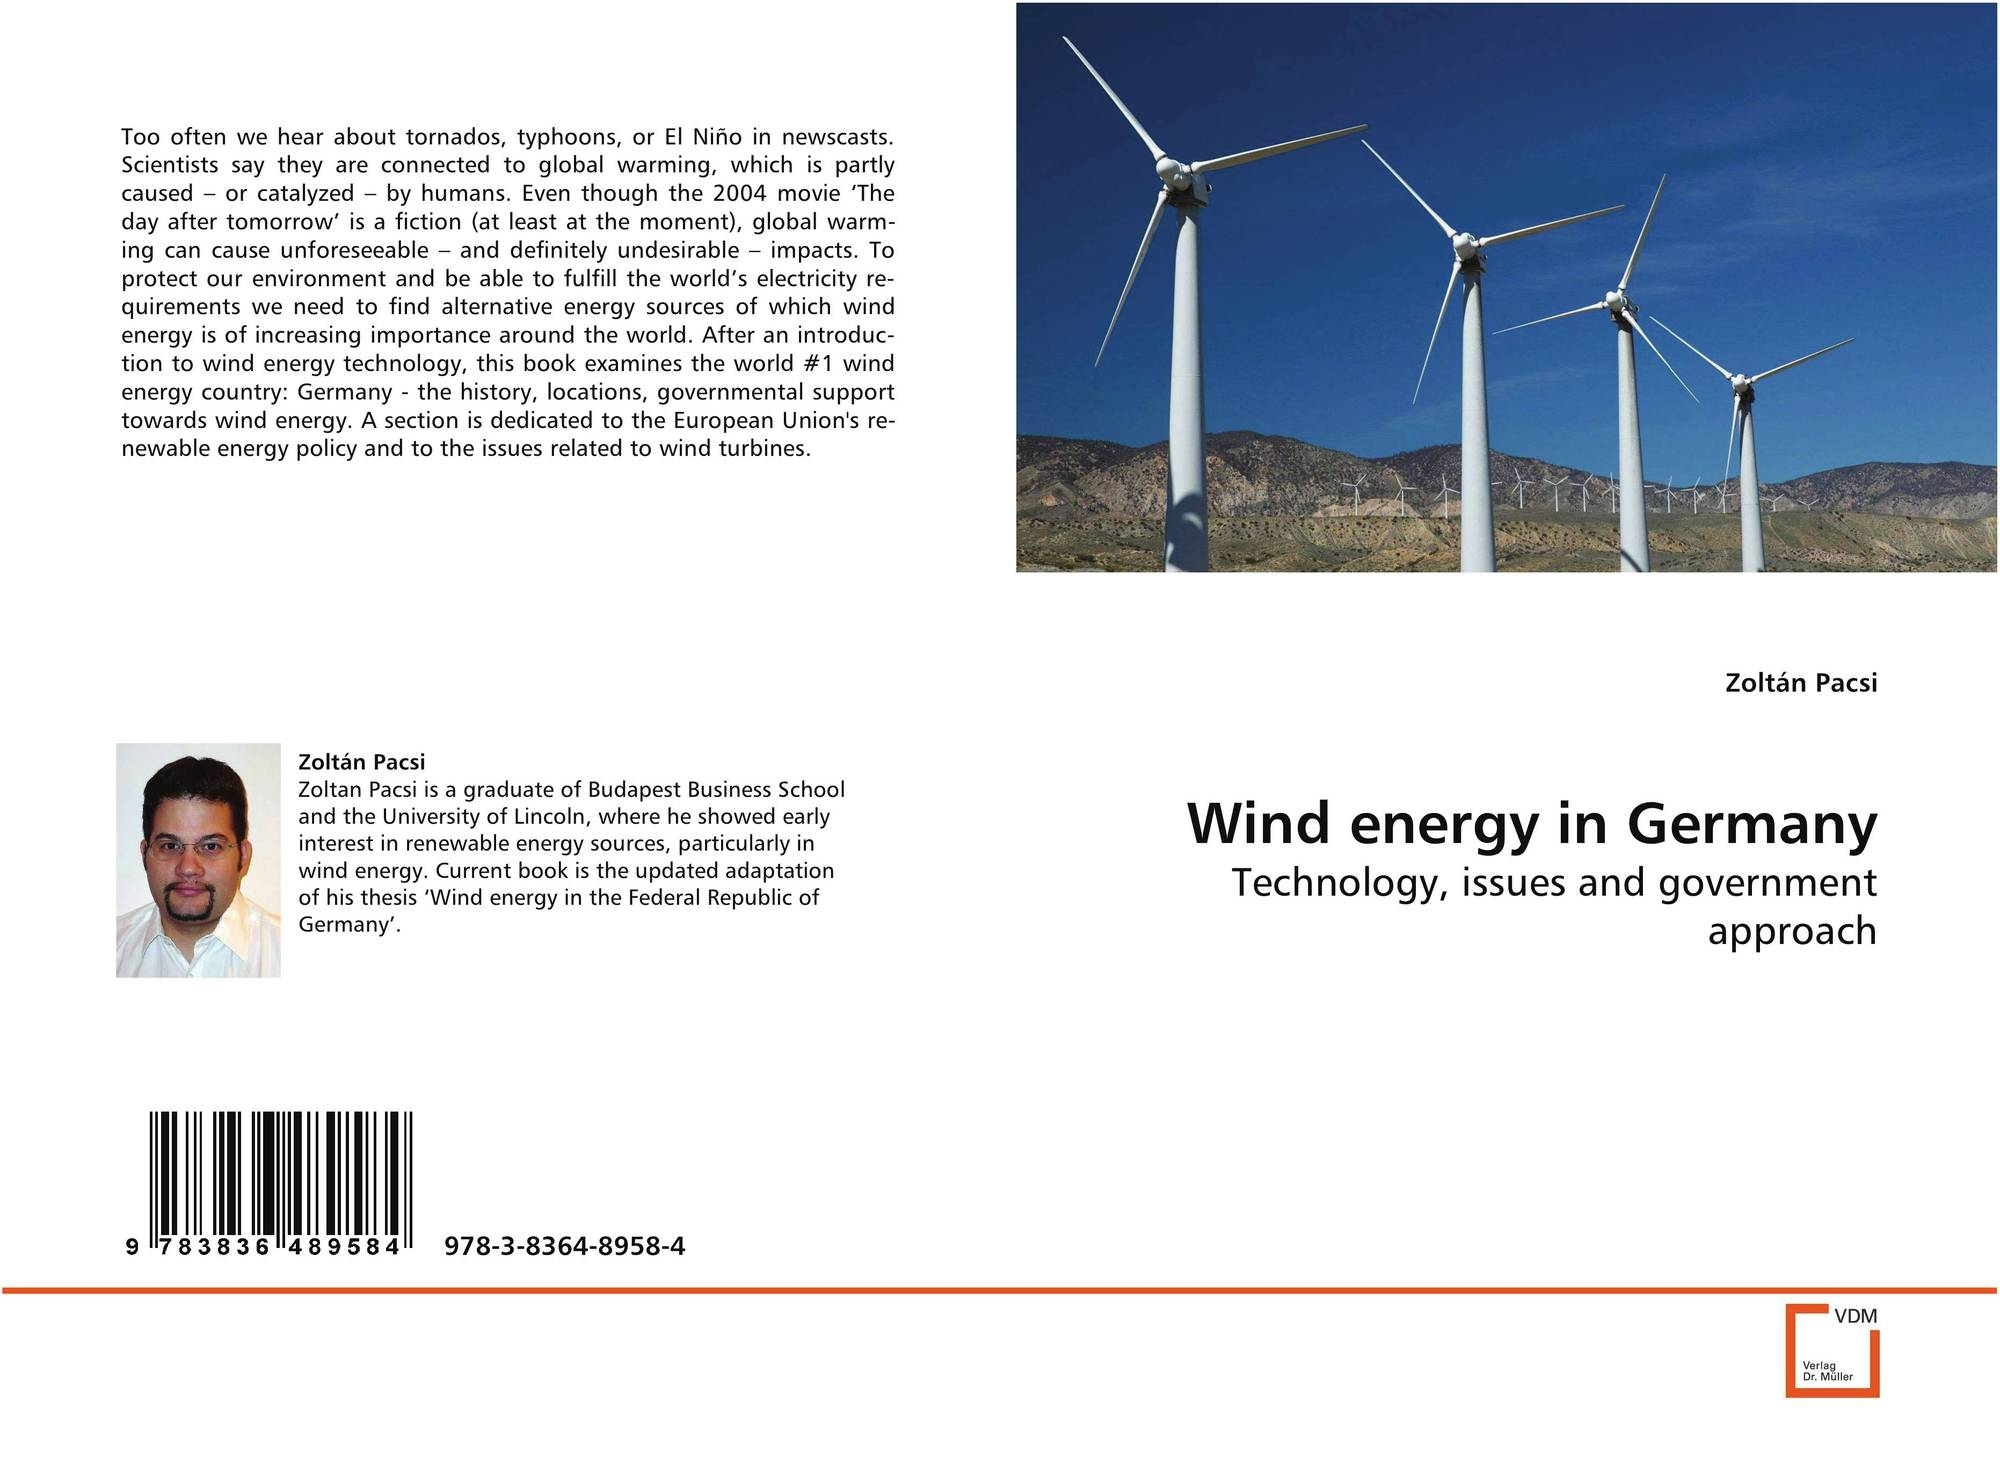 a discussion on the issues related energy policy in germany State energy policies impact the your state's open government laws and exemptions related to critical energy and research on energy issues.